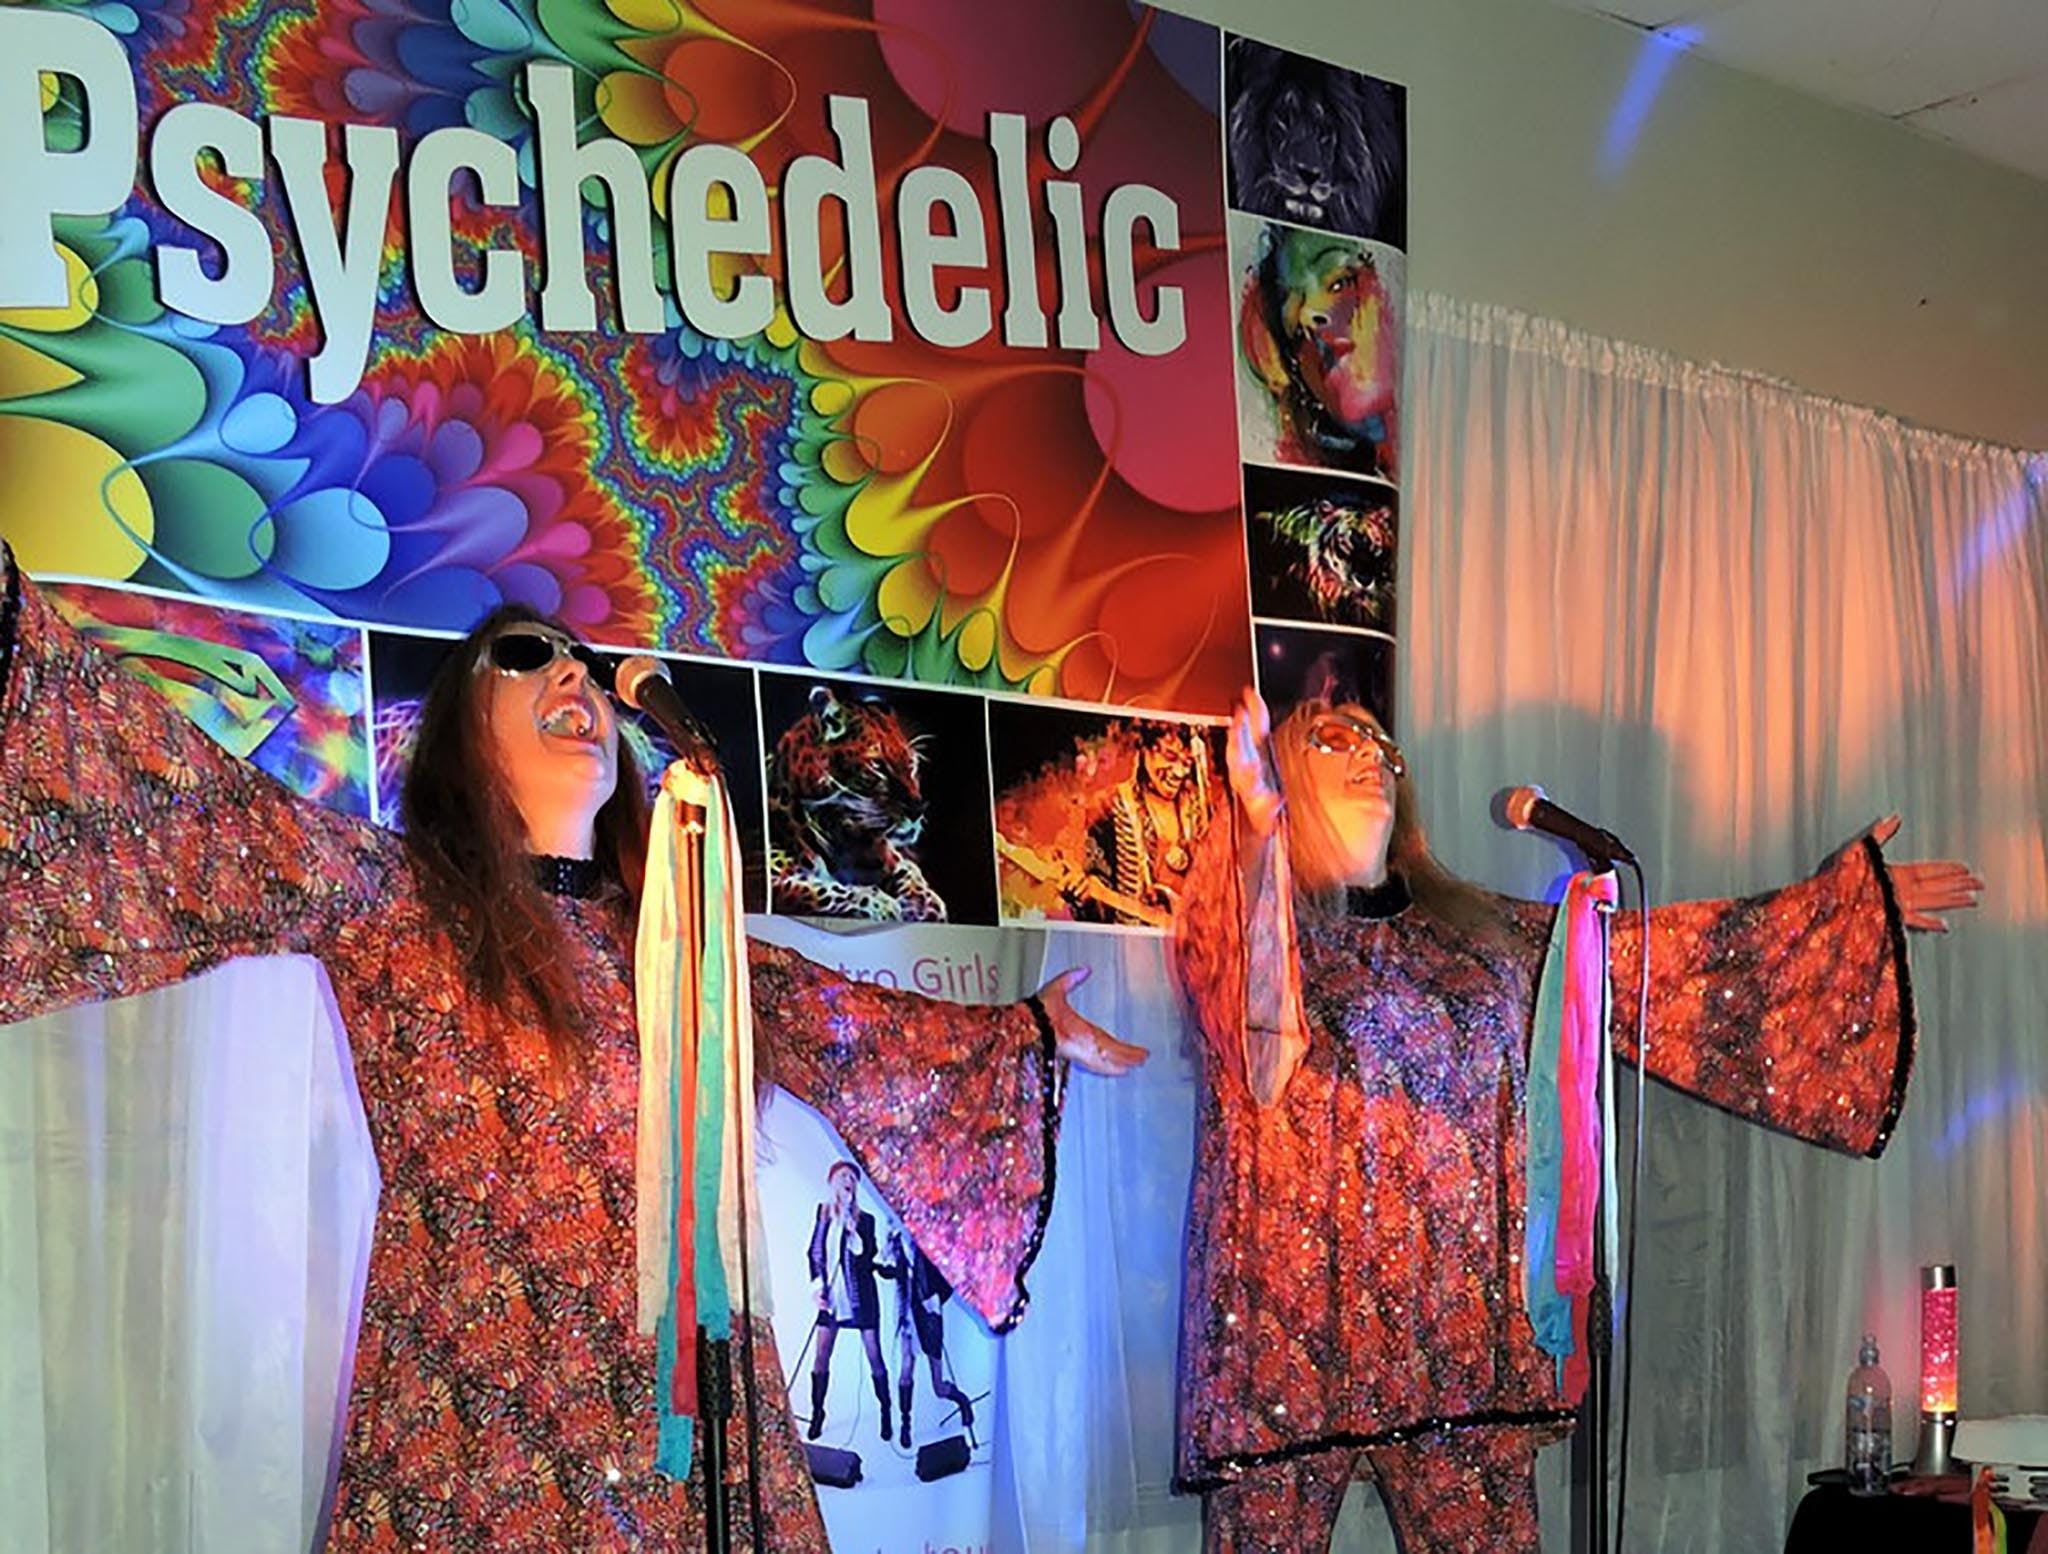 Psychedelic 70s Show The Retro Girls - Pubs and Clubs